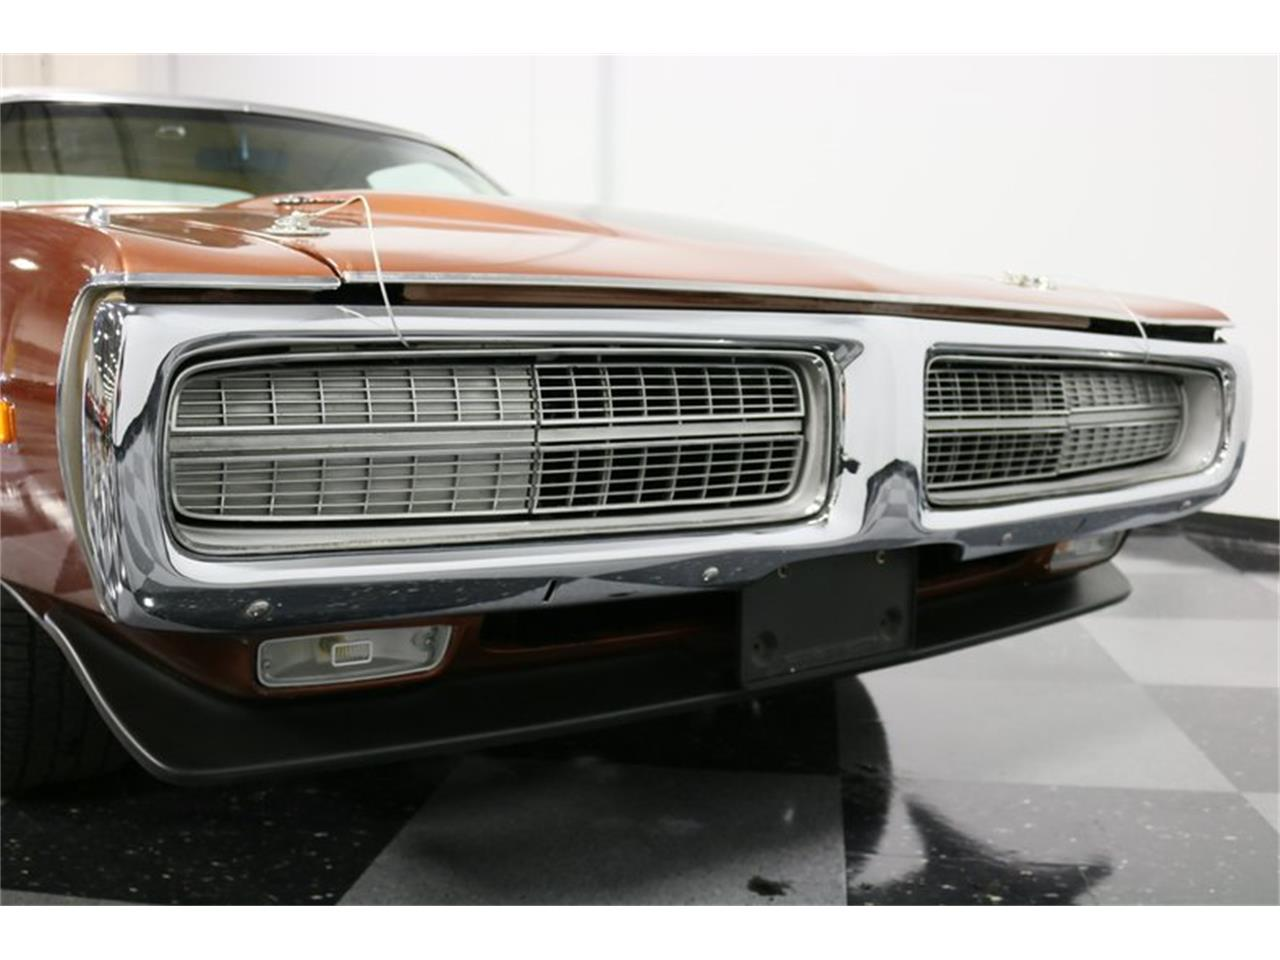 1973 Dodge Charger for sale in Ft Worth, TX – photo 72